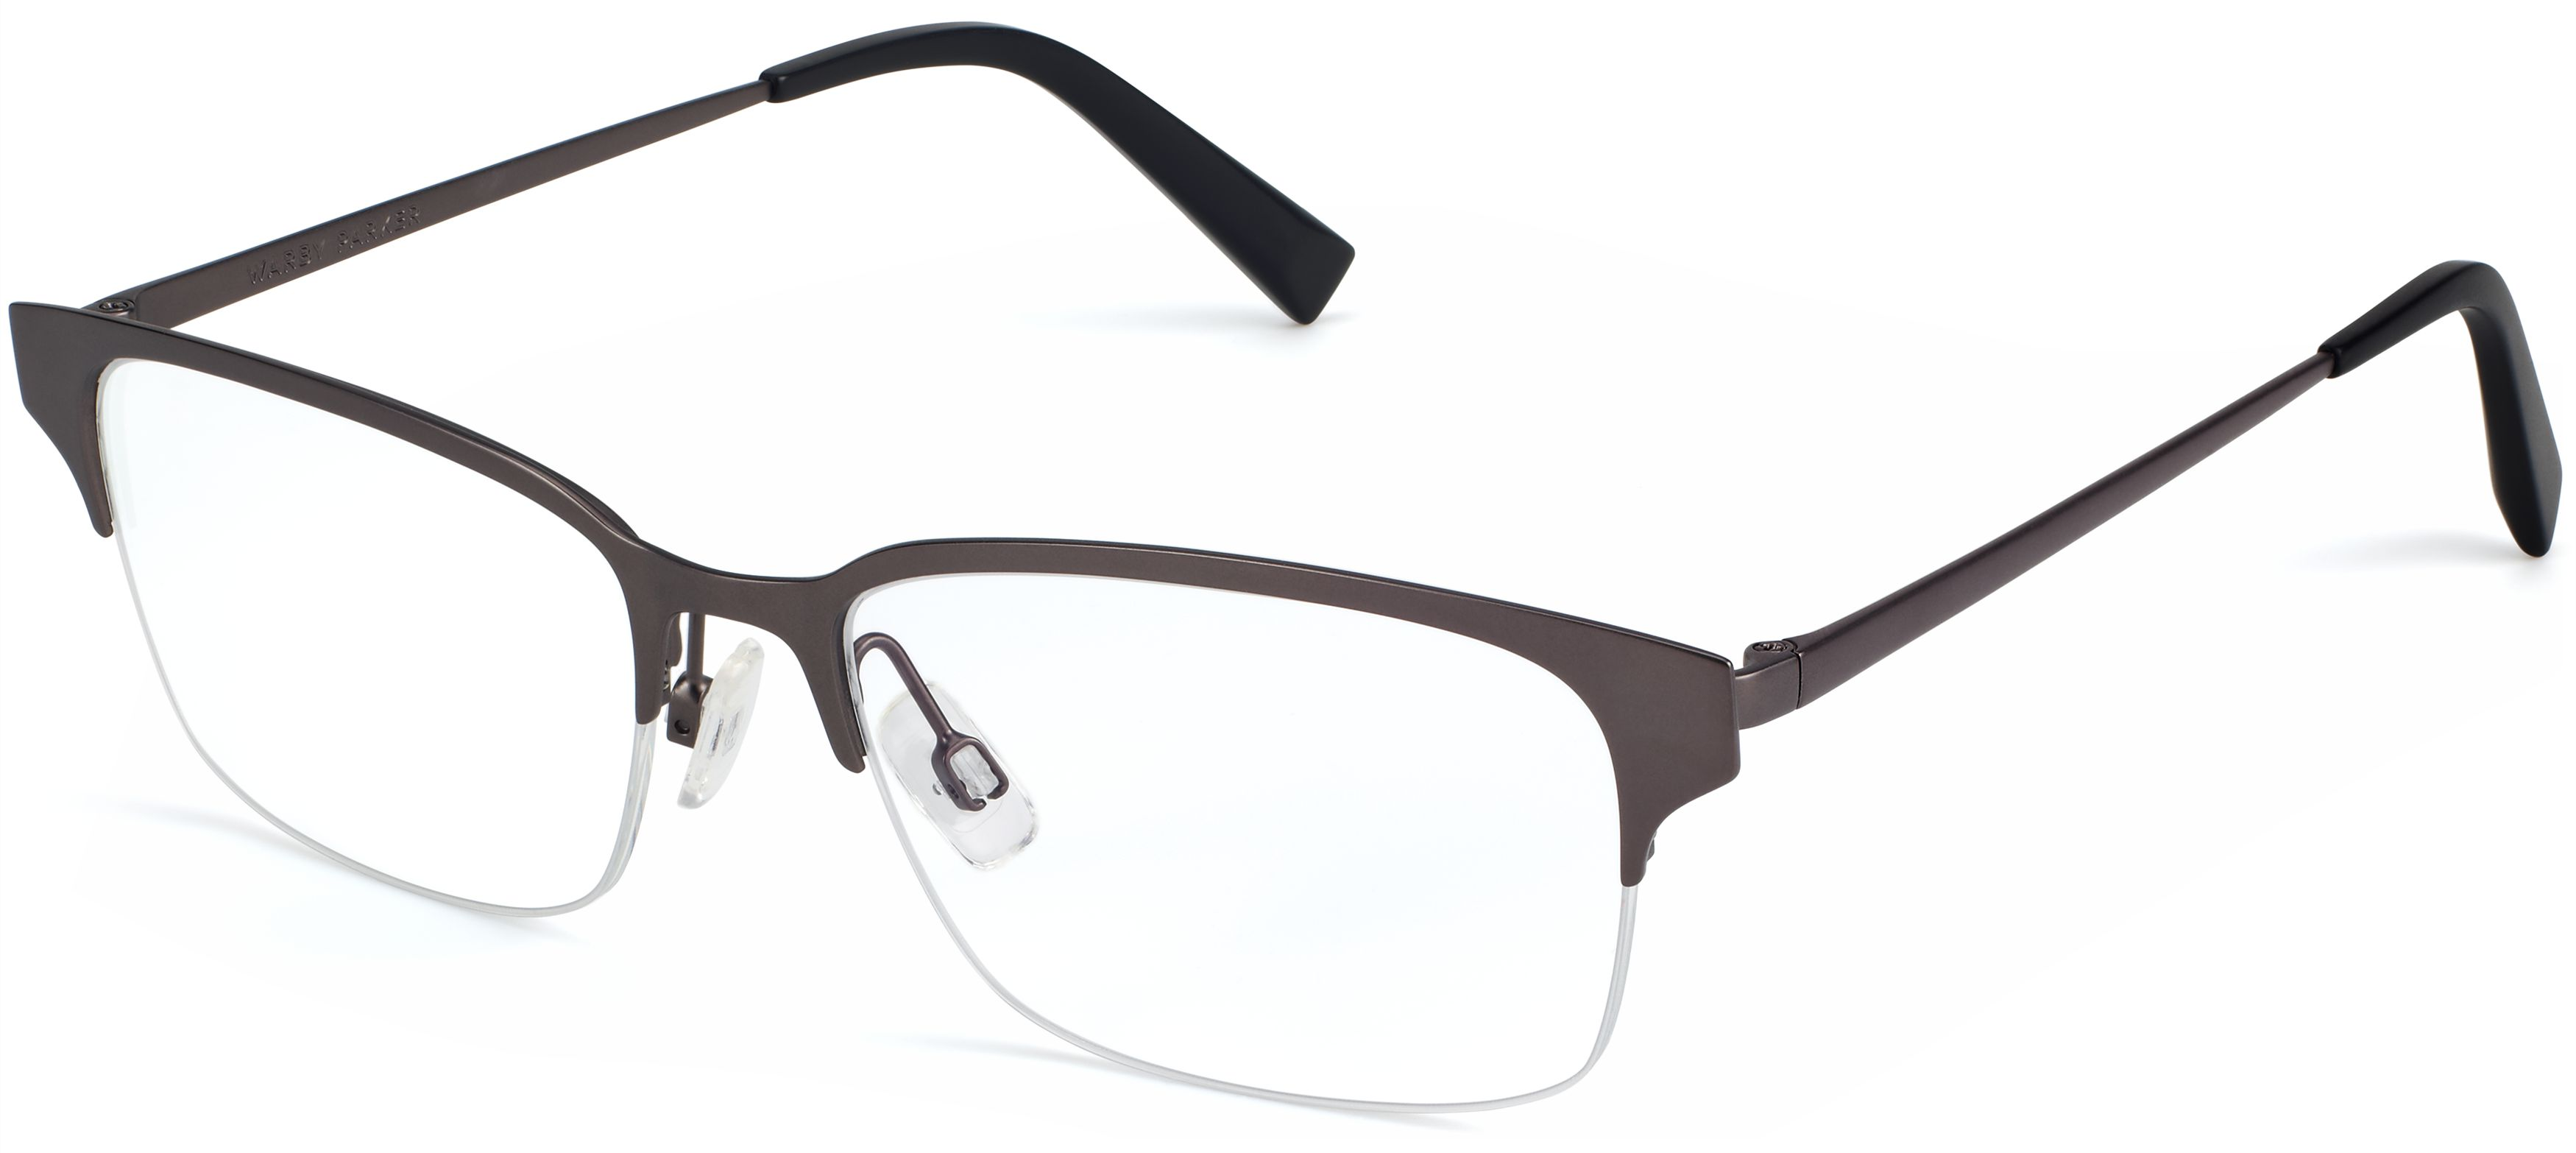 216242a00705 James Wide Eyeglasses in Carbon for Men